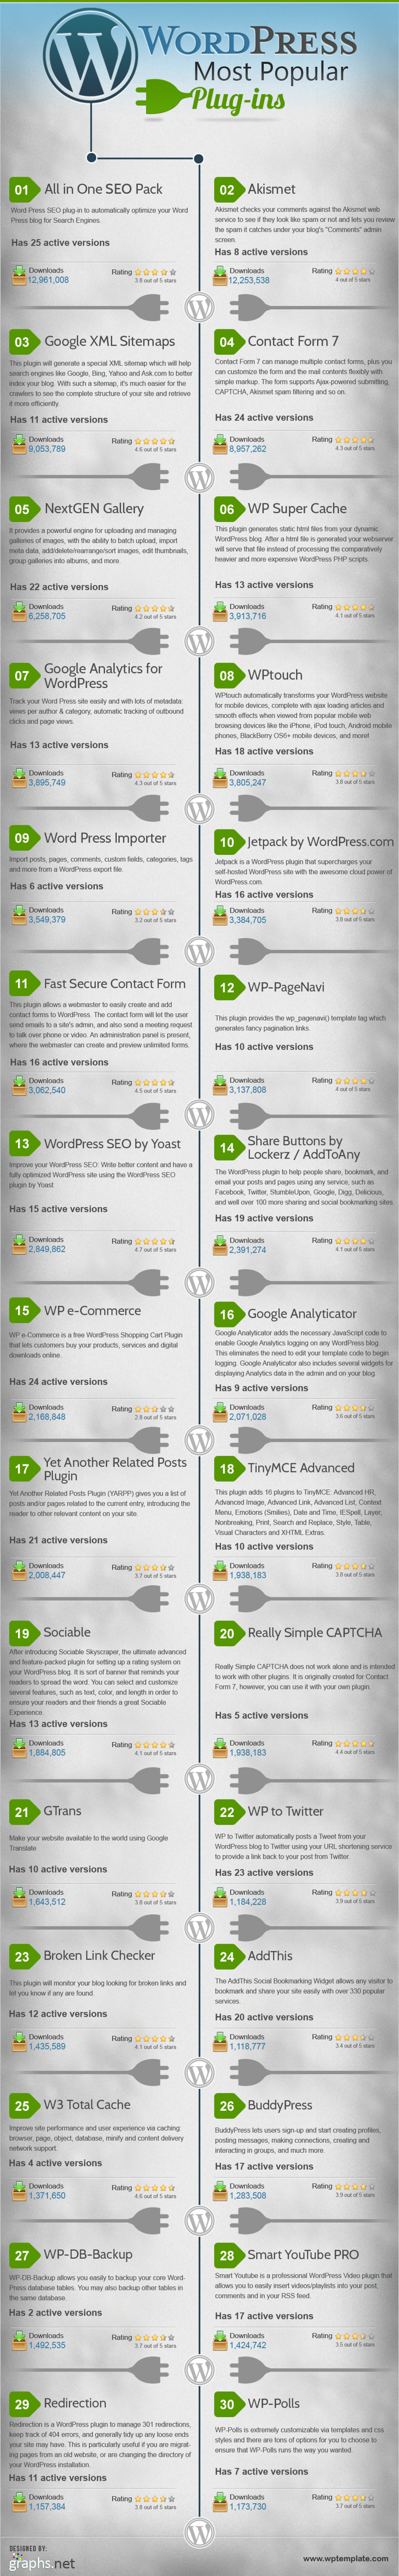 Wordpress Most Popular Plugins Infographic